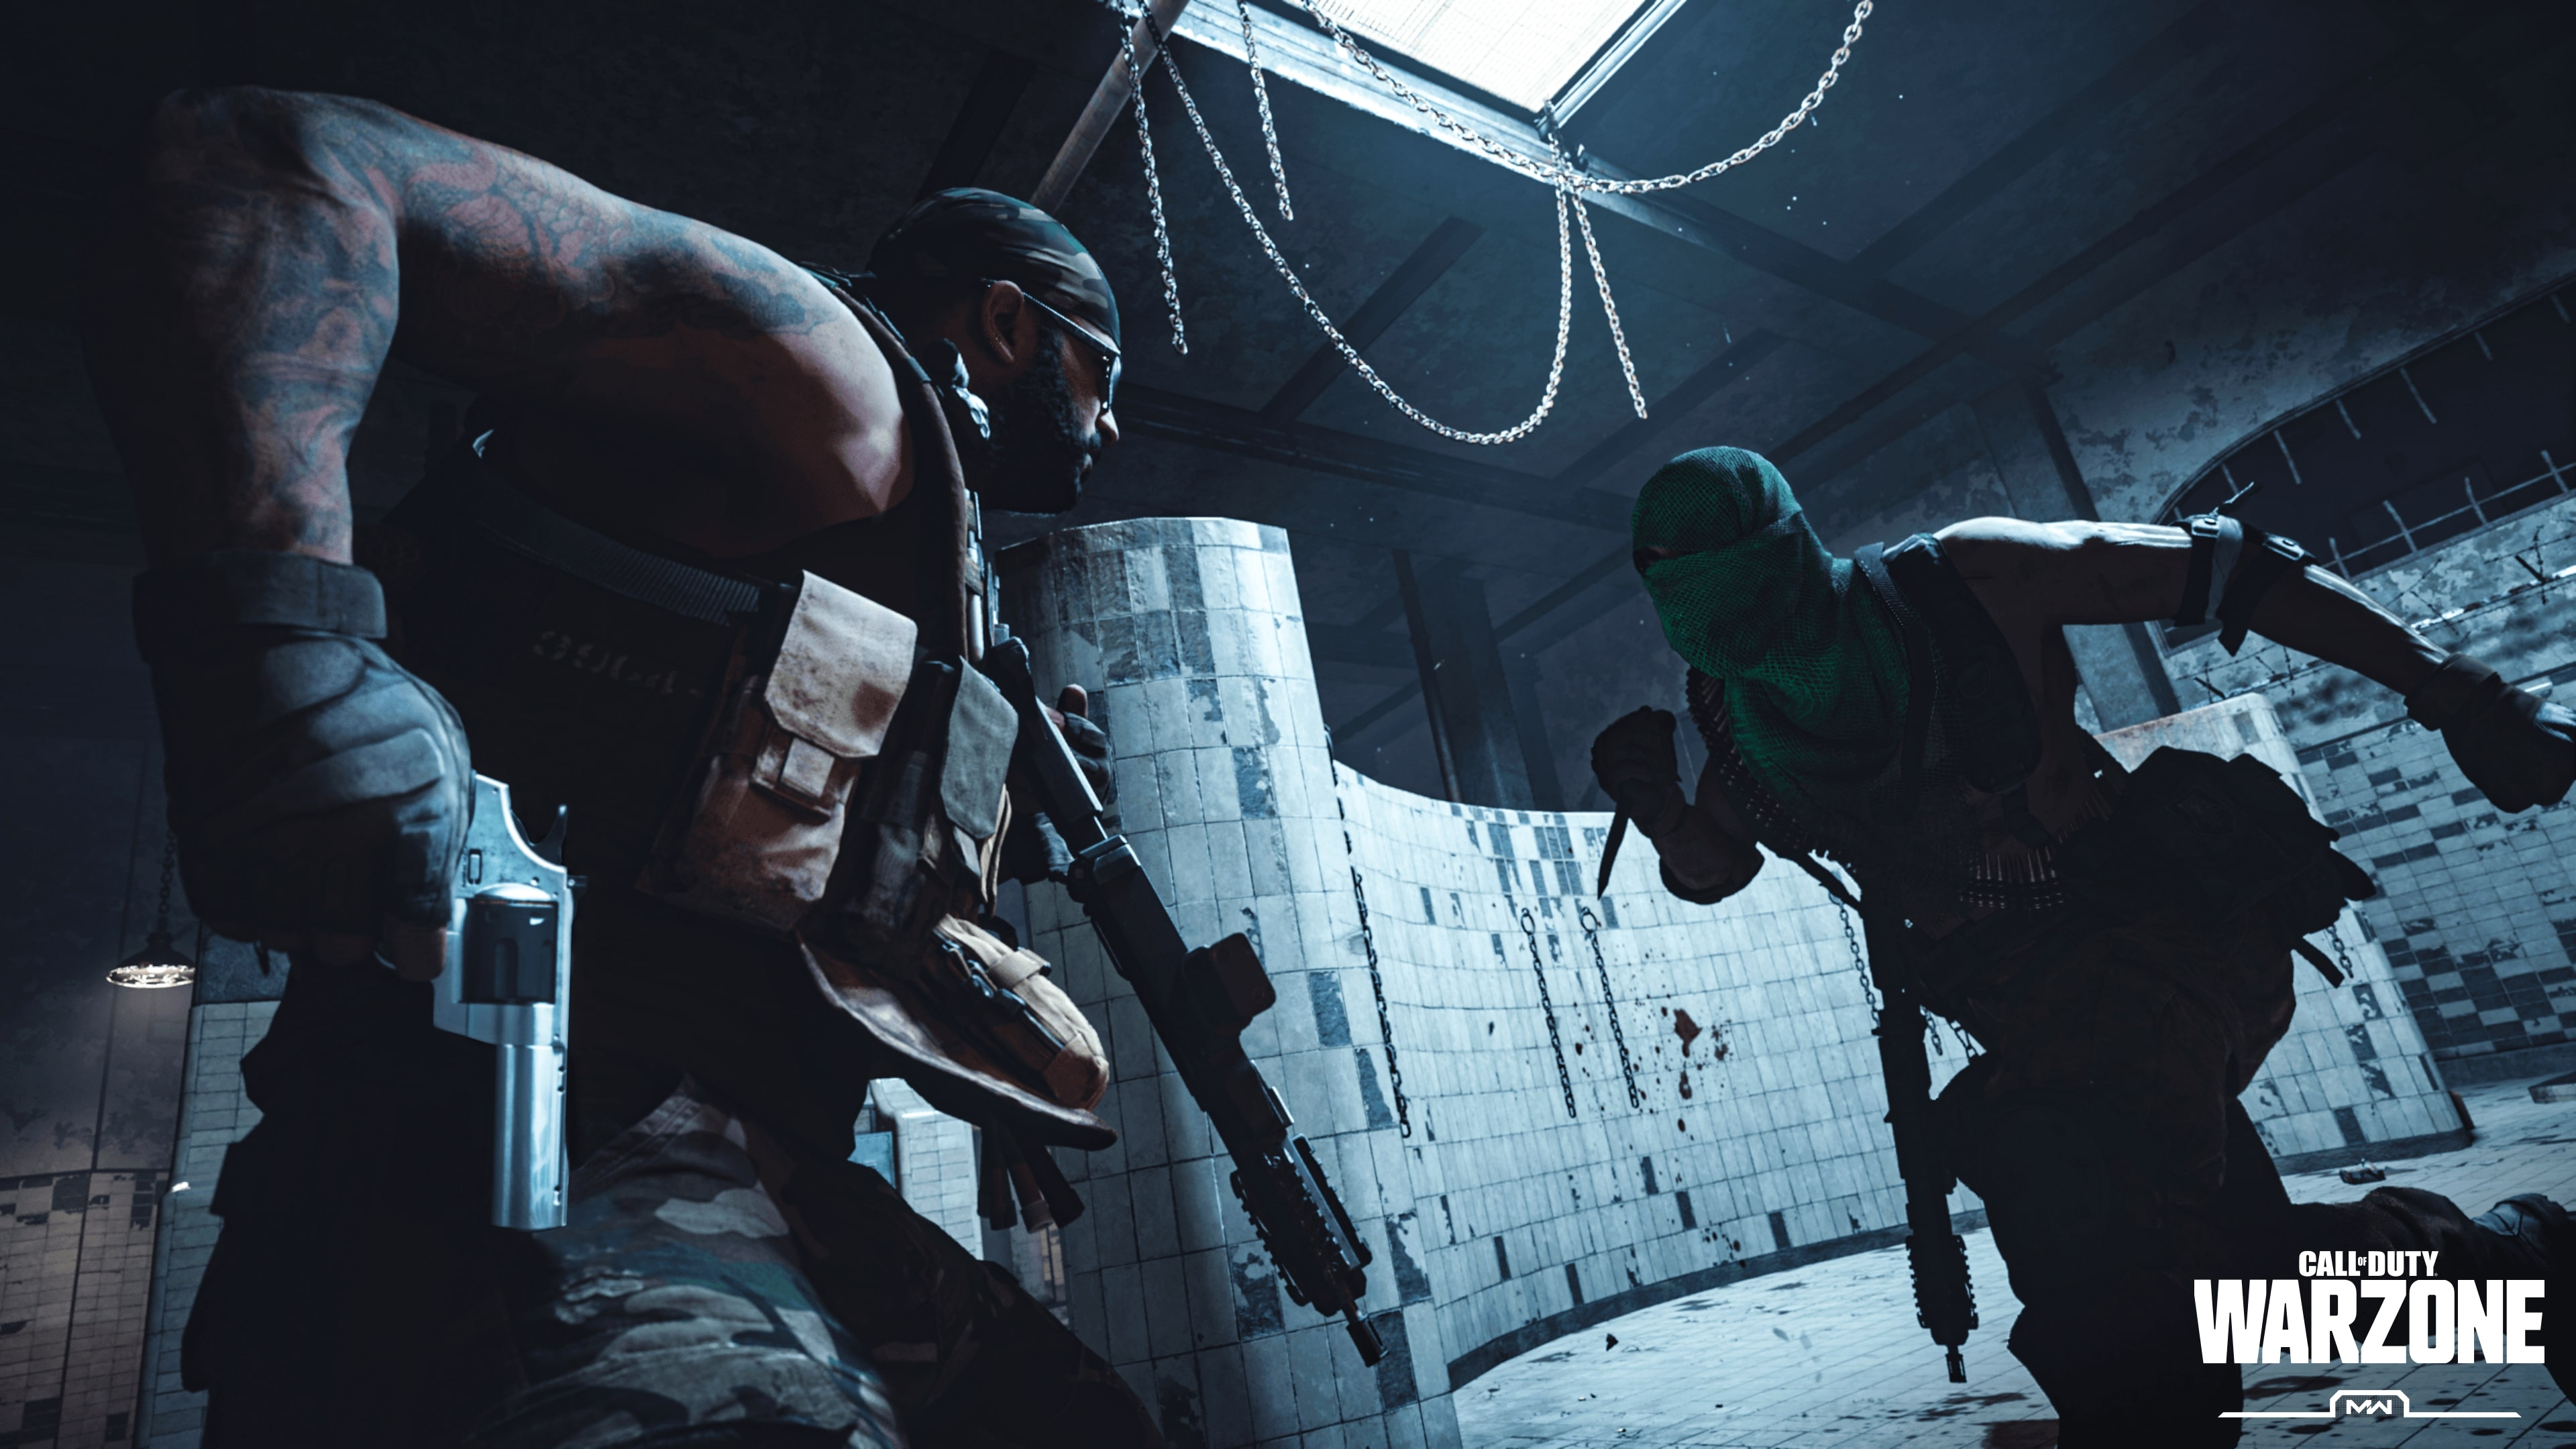 Gulag pits Warzone players one-on-one in a fight to the death